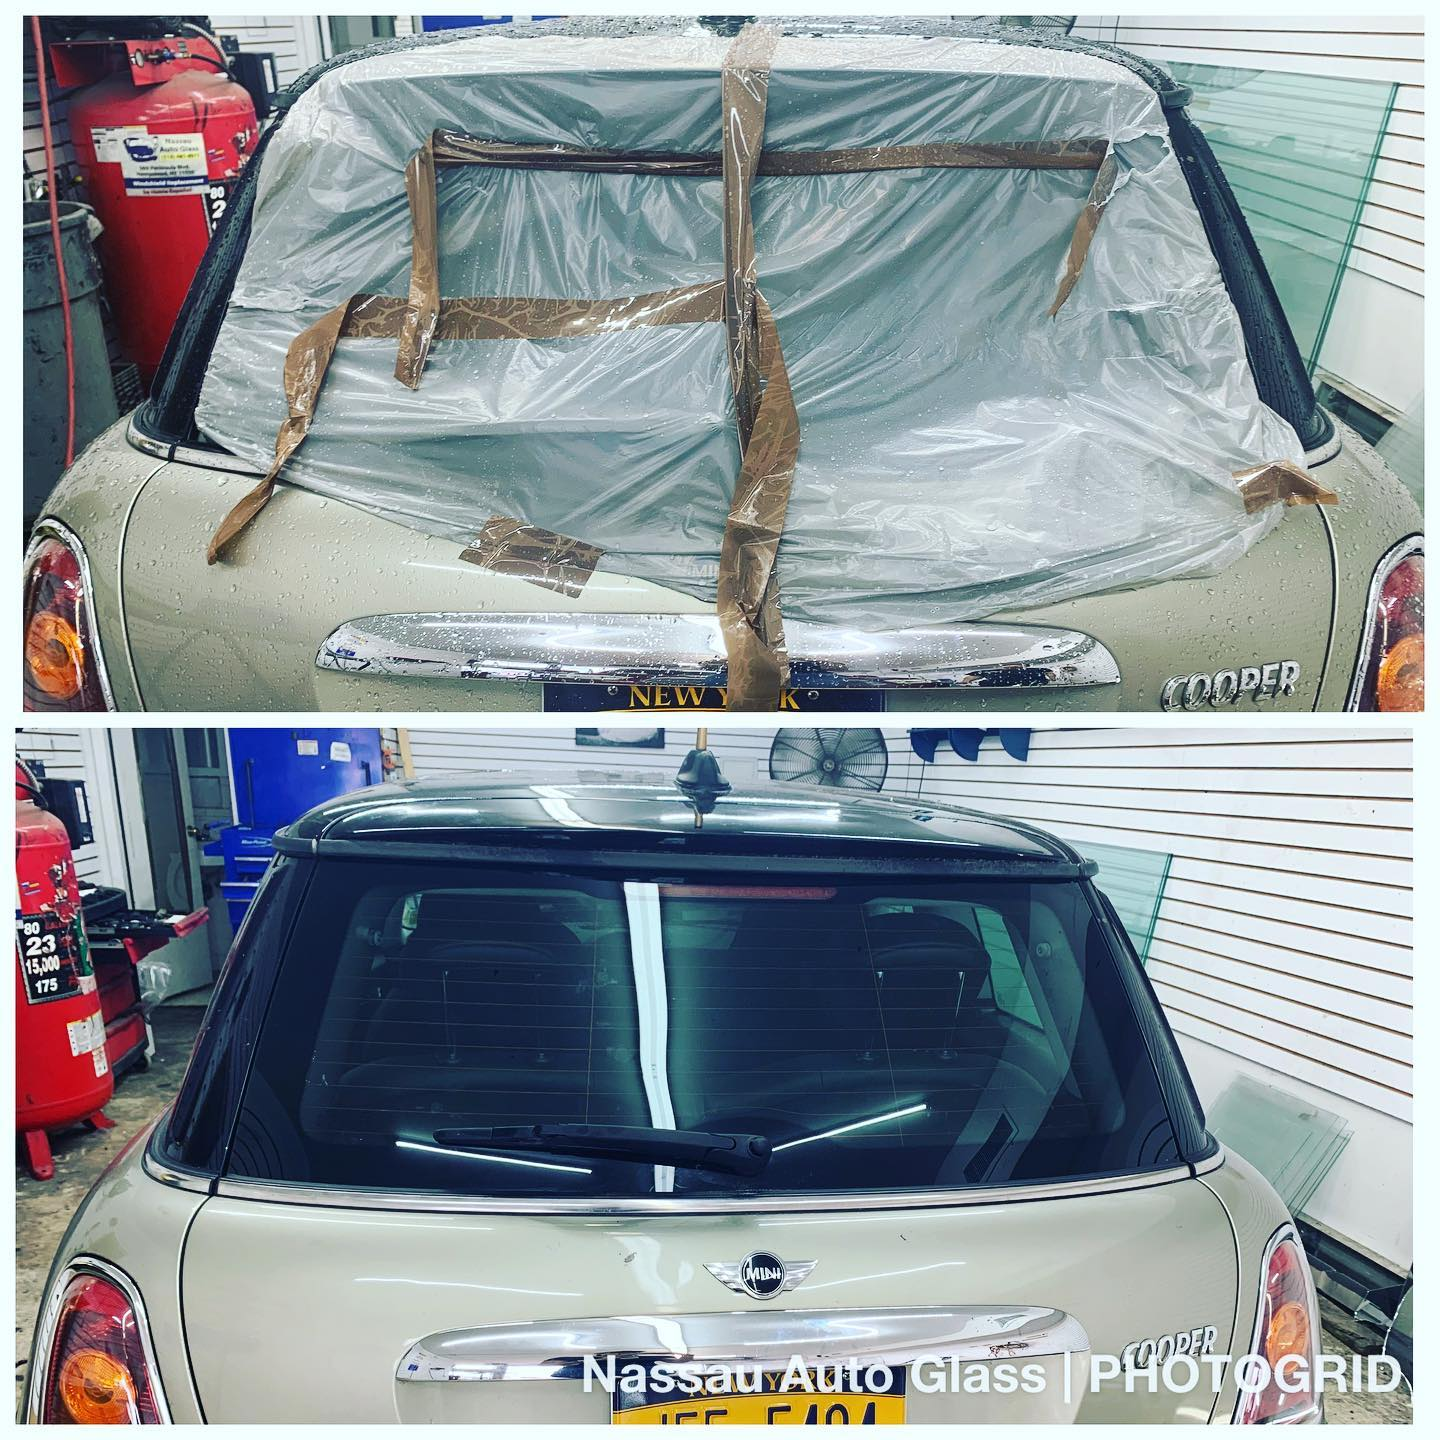 Nassau Auto Glass Services: Before & After Picture 16